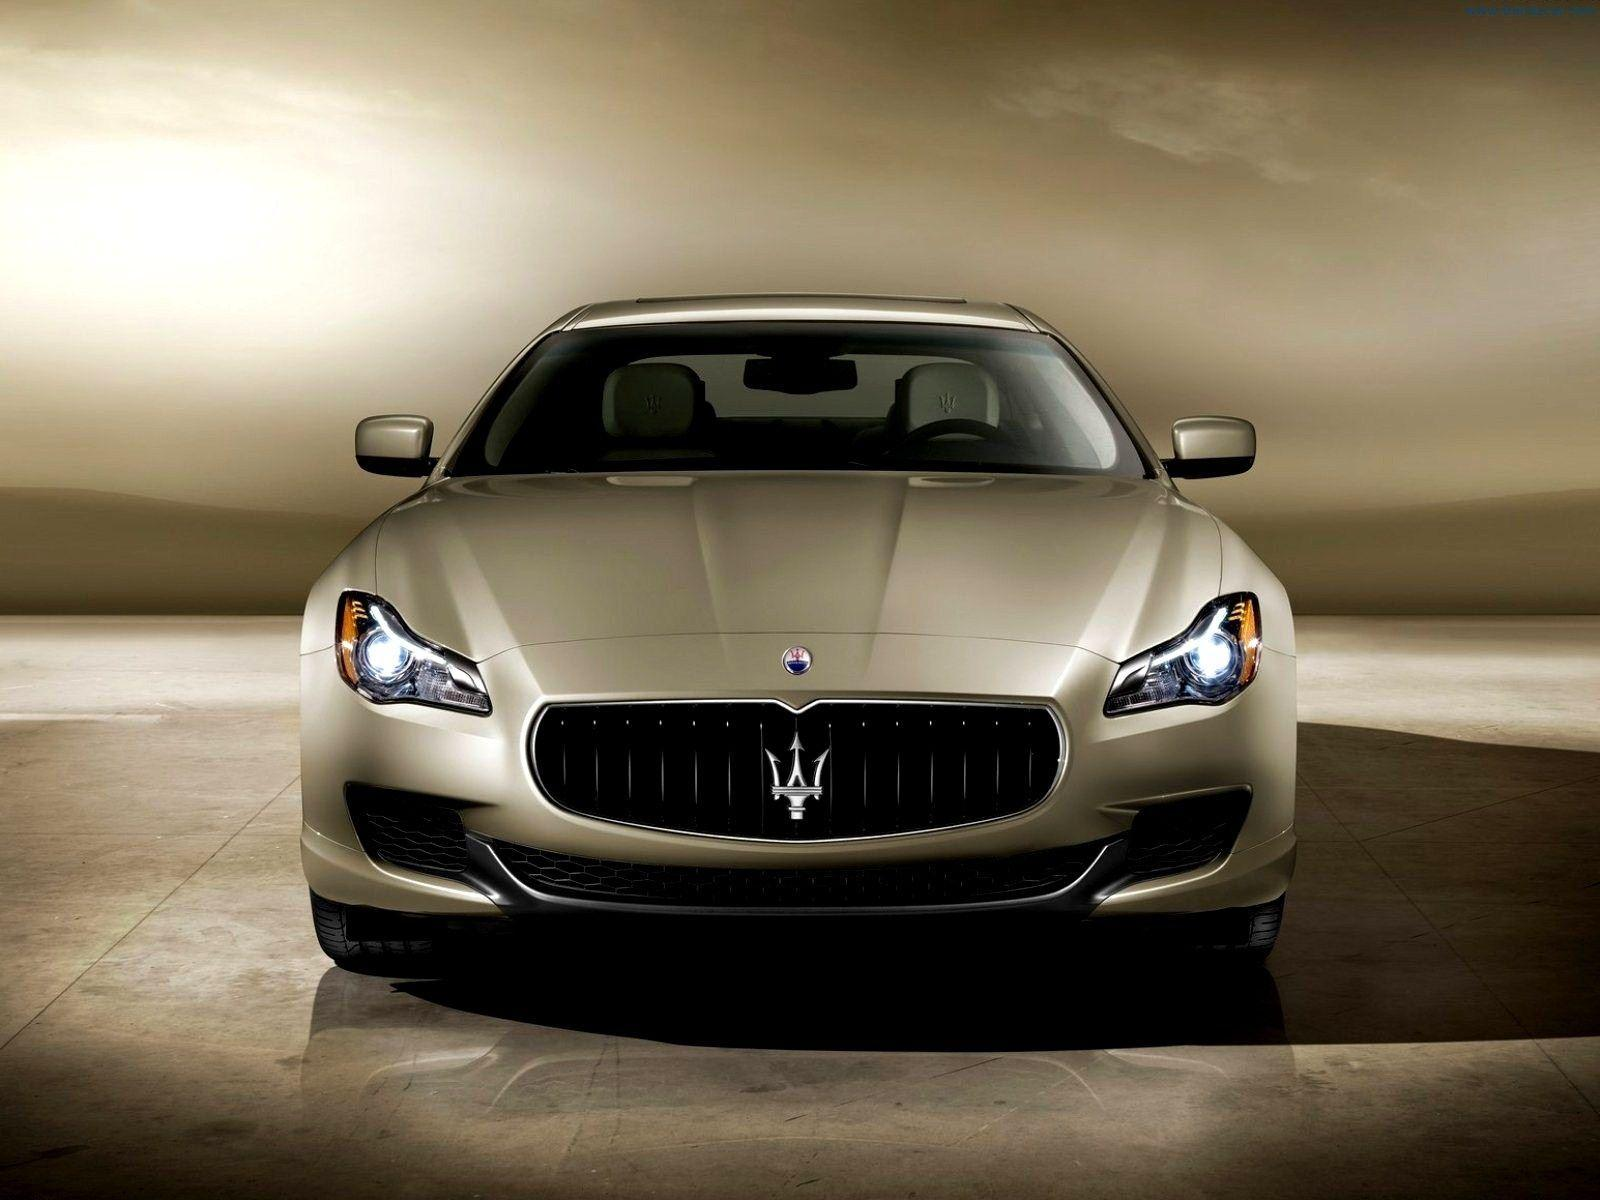 HD Maserati Wallpaper - WallpaperSafari